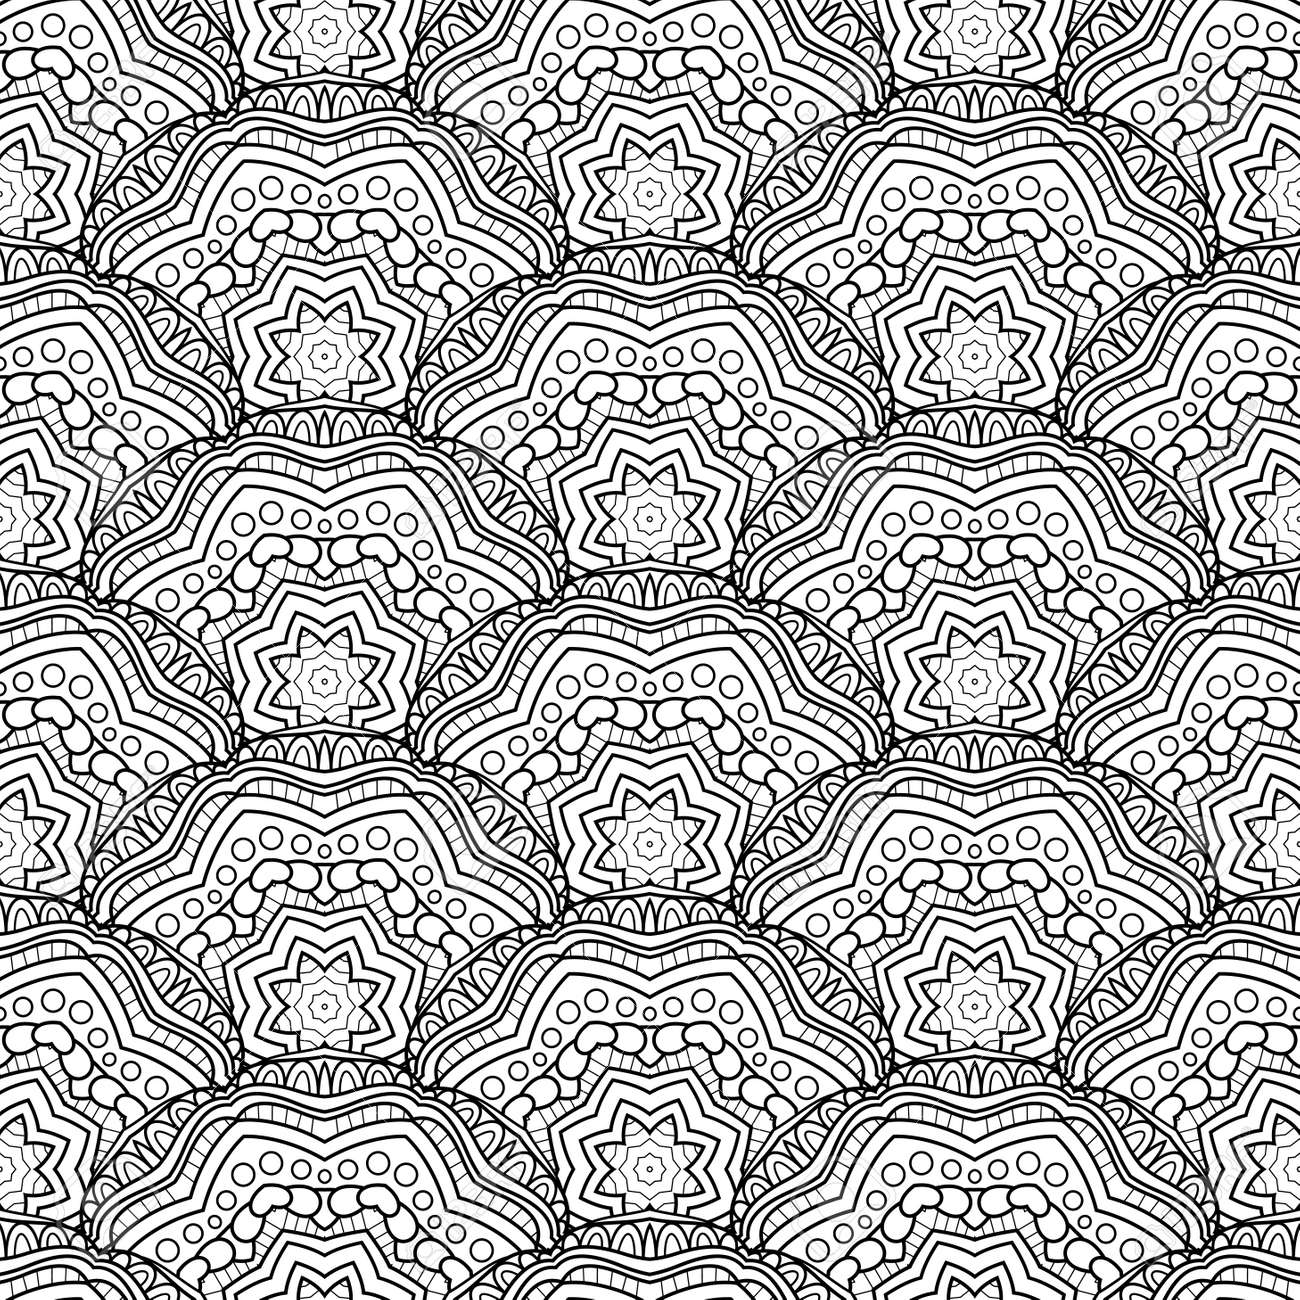 graphic regarding Scales Printable titled Vector Seamless Monochrome Behavior. Printable Coloring Webpages